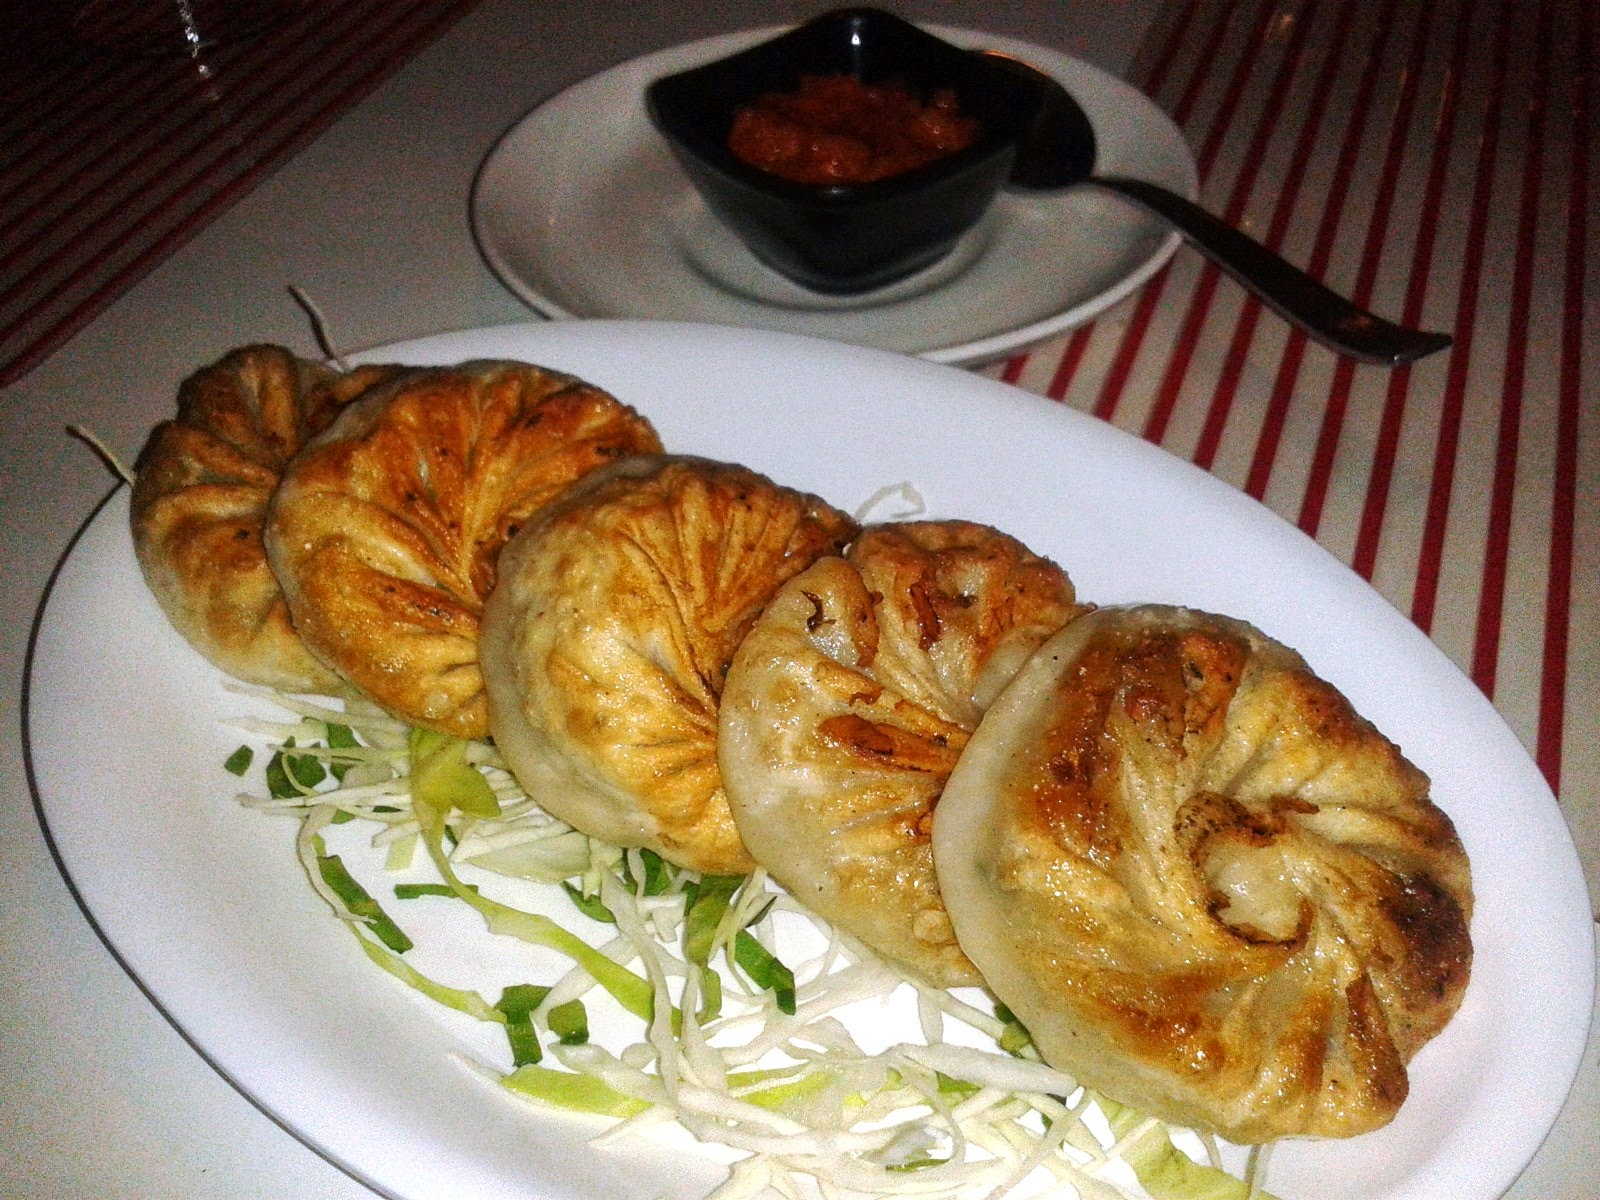 Veg Pan Fried Dumplings